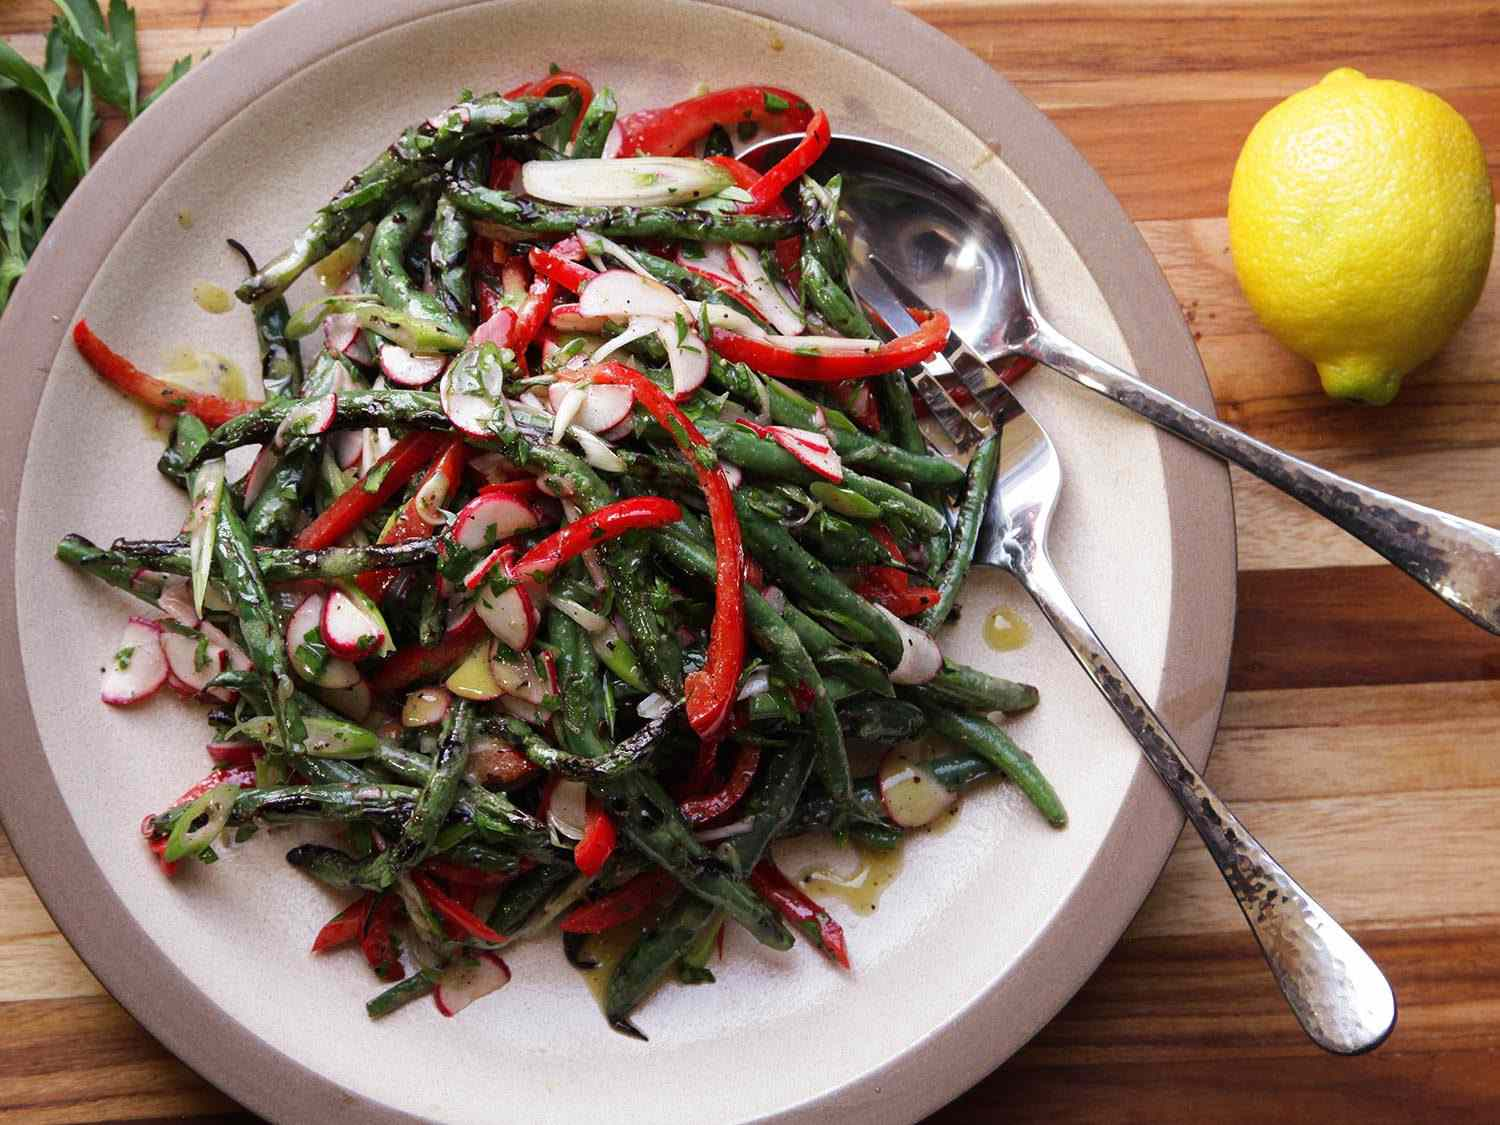 Overhead shot of a ceramic plate of Grilled Green Bean Salad With Red Peppers and Radishes